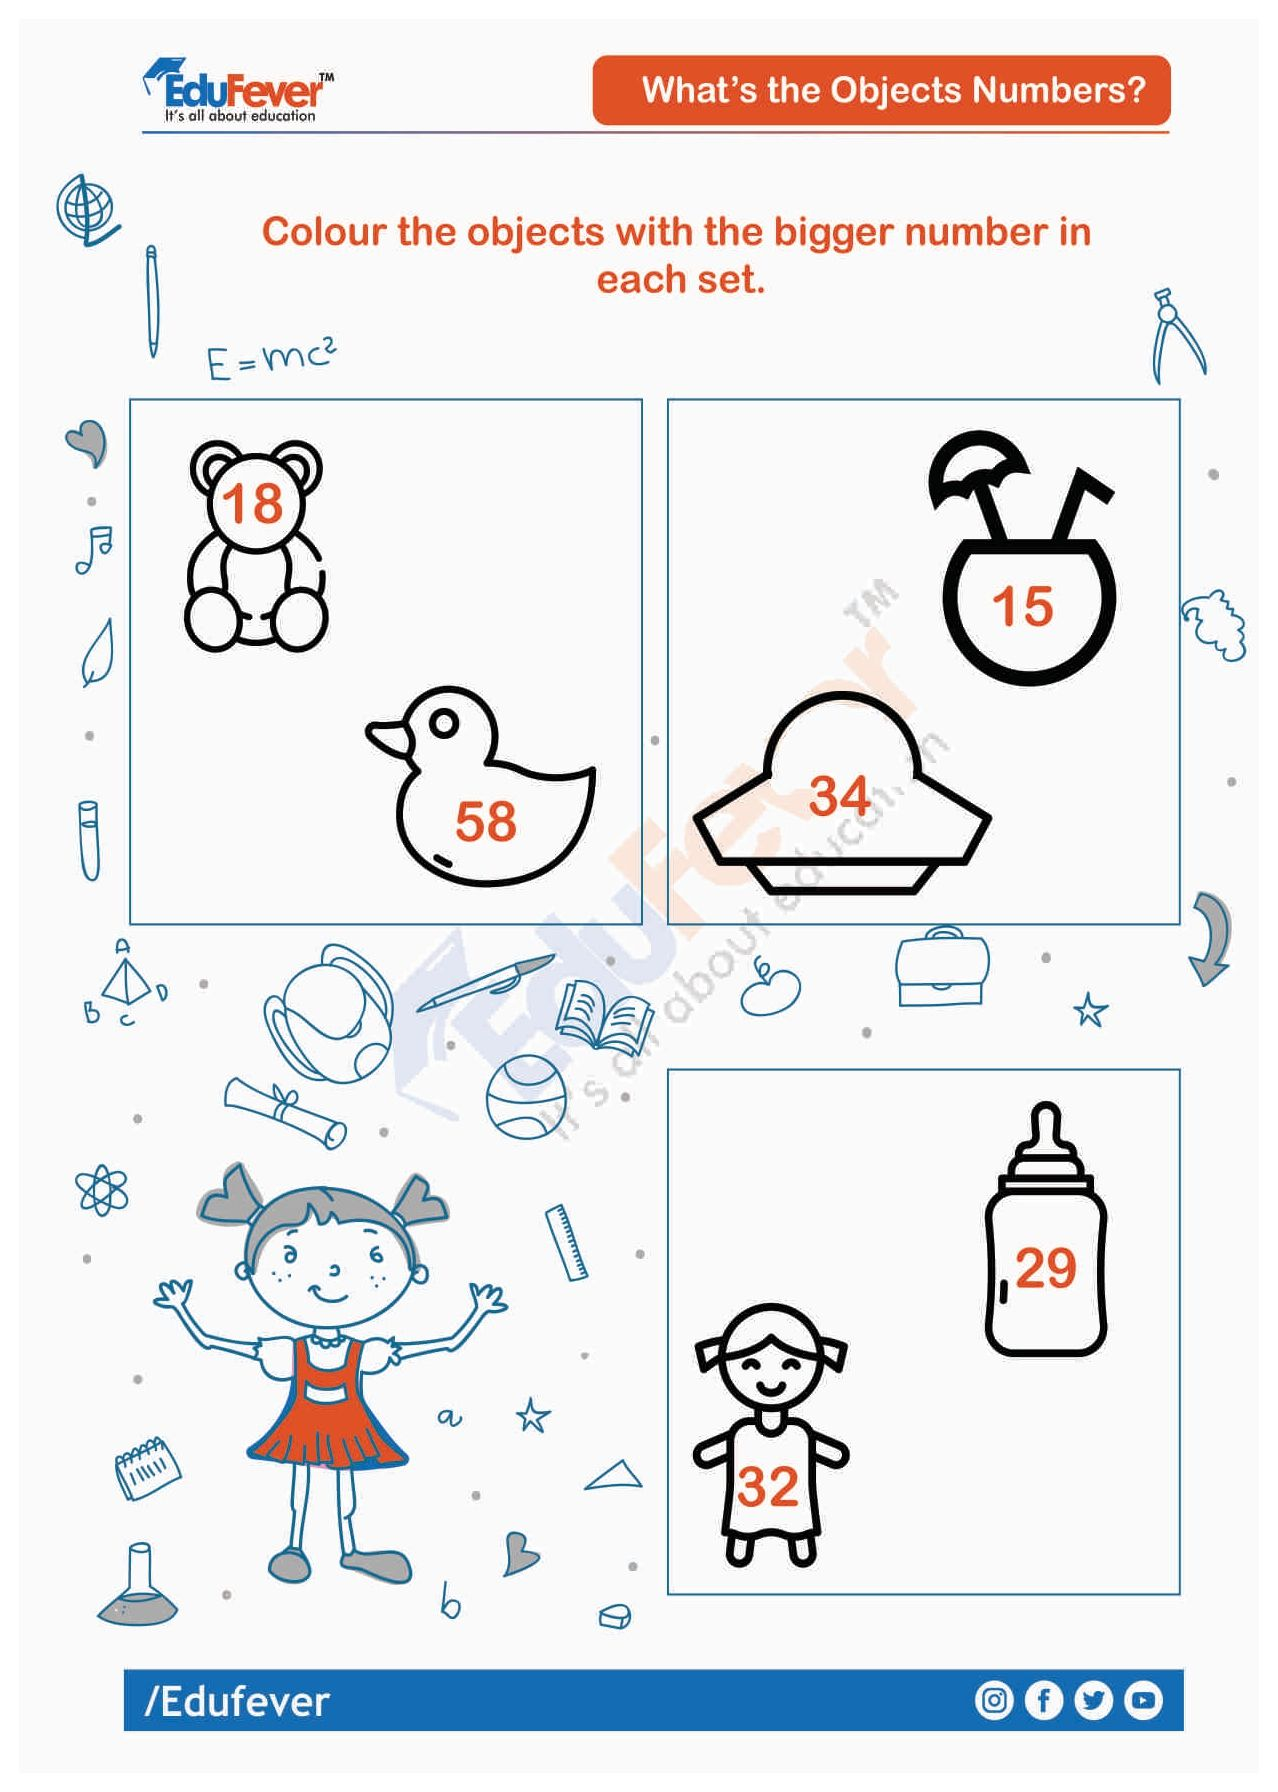 Colour Object With Bigger Number Ukg Worksheet Math Worksheet Worksheets For Kids Learning Activities Big and small numbers worksheets for